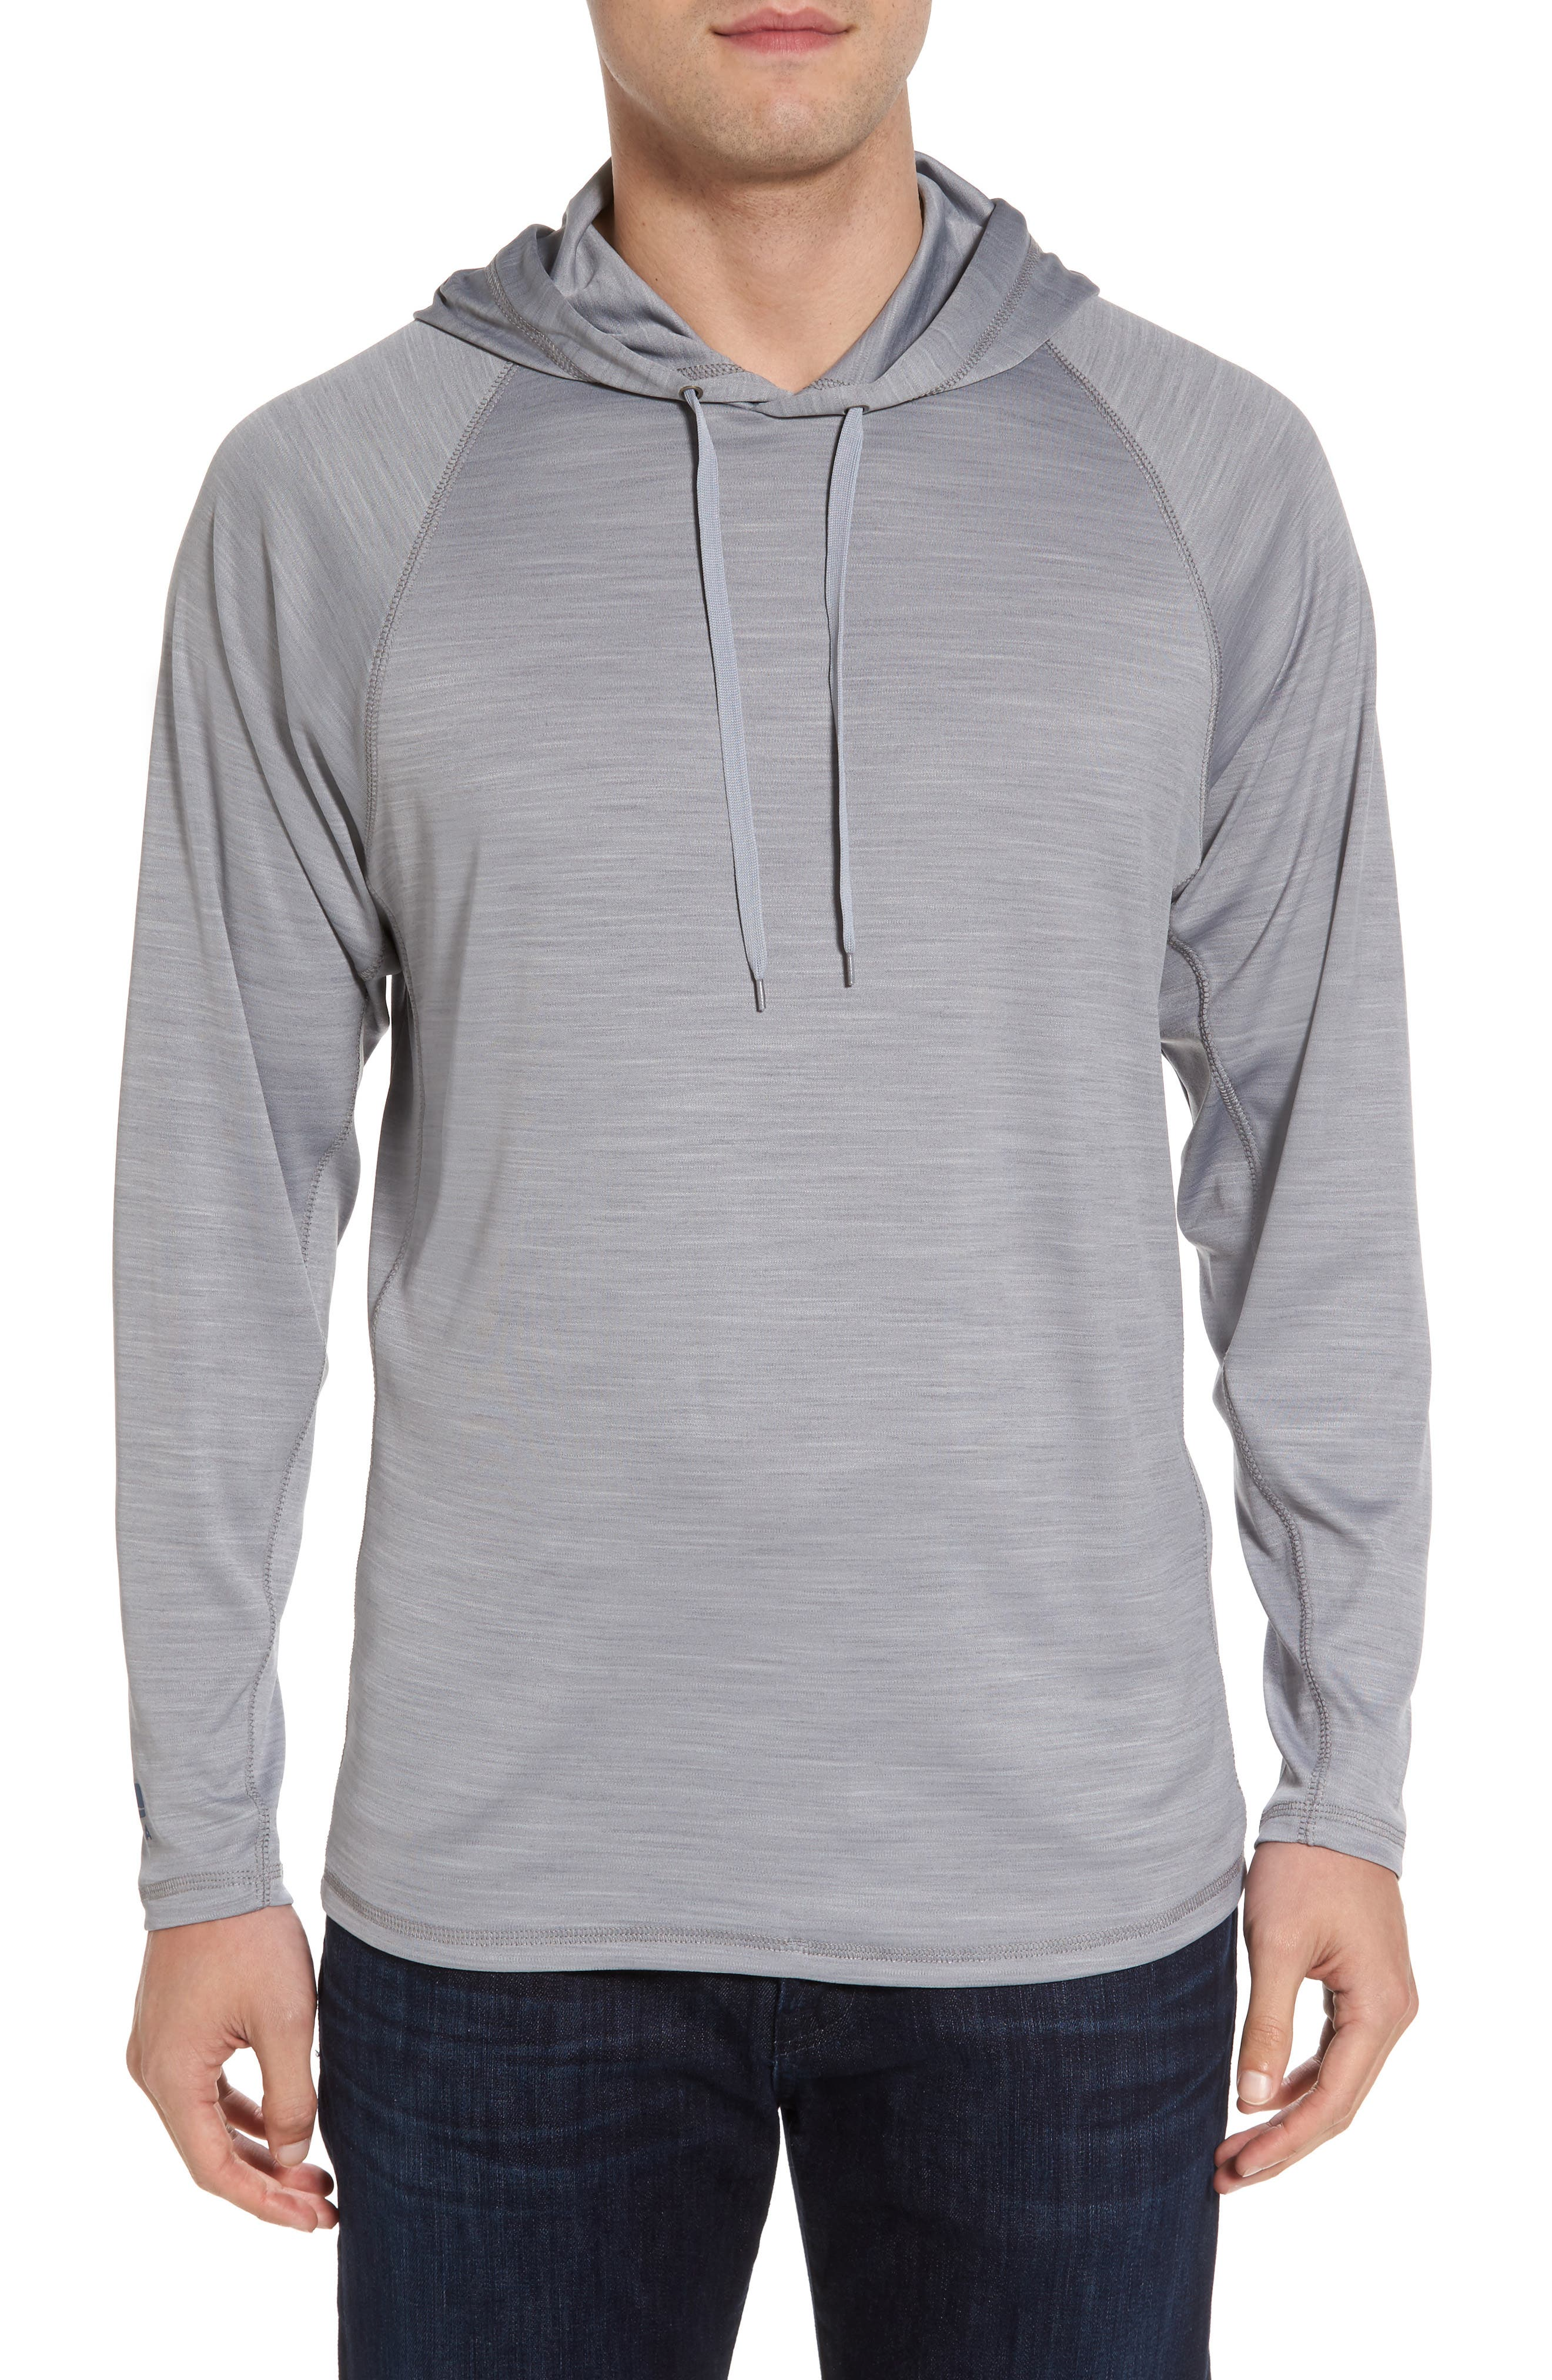 Cova Undercover Hooded Long Sleeve Performance T-Shirt